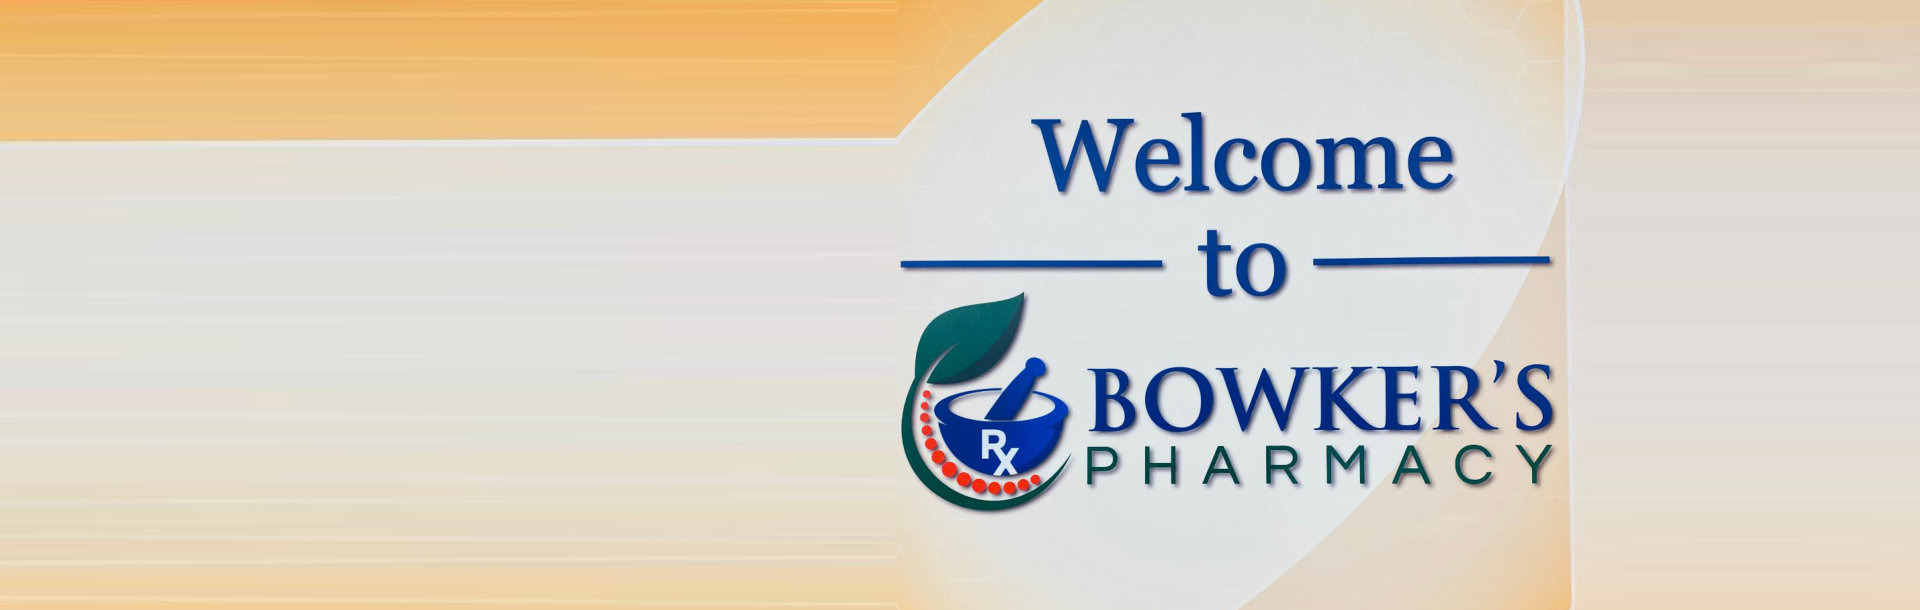 Welcome to Bowker's Pharmacy